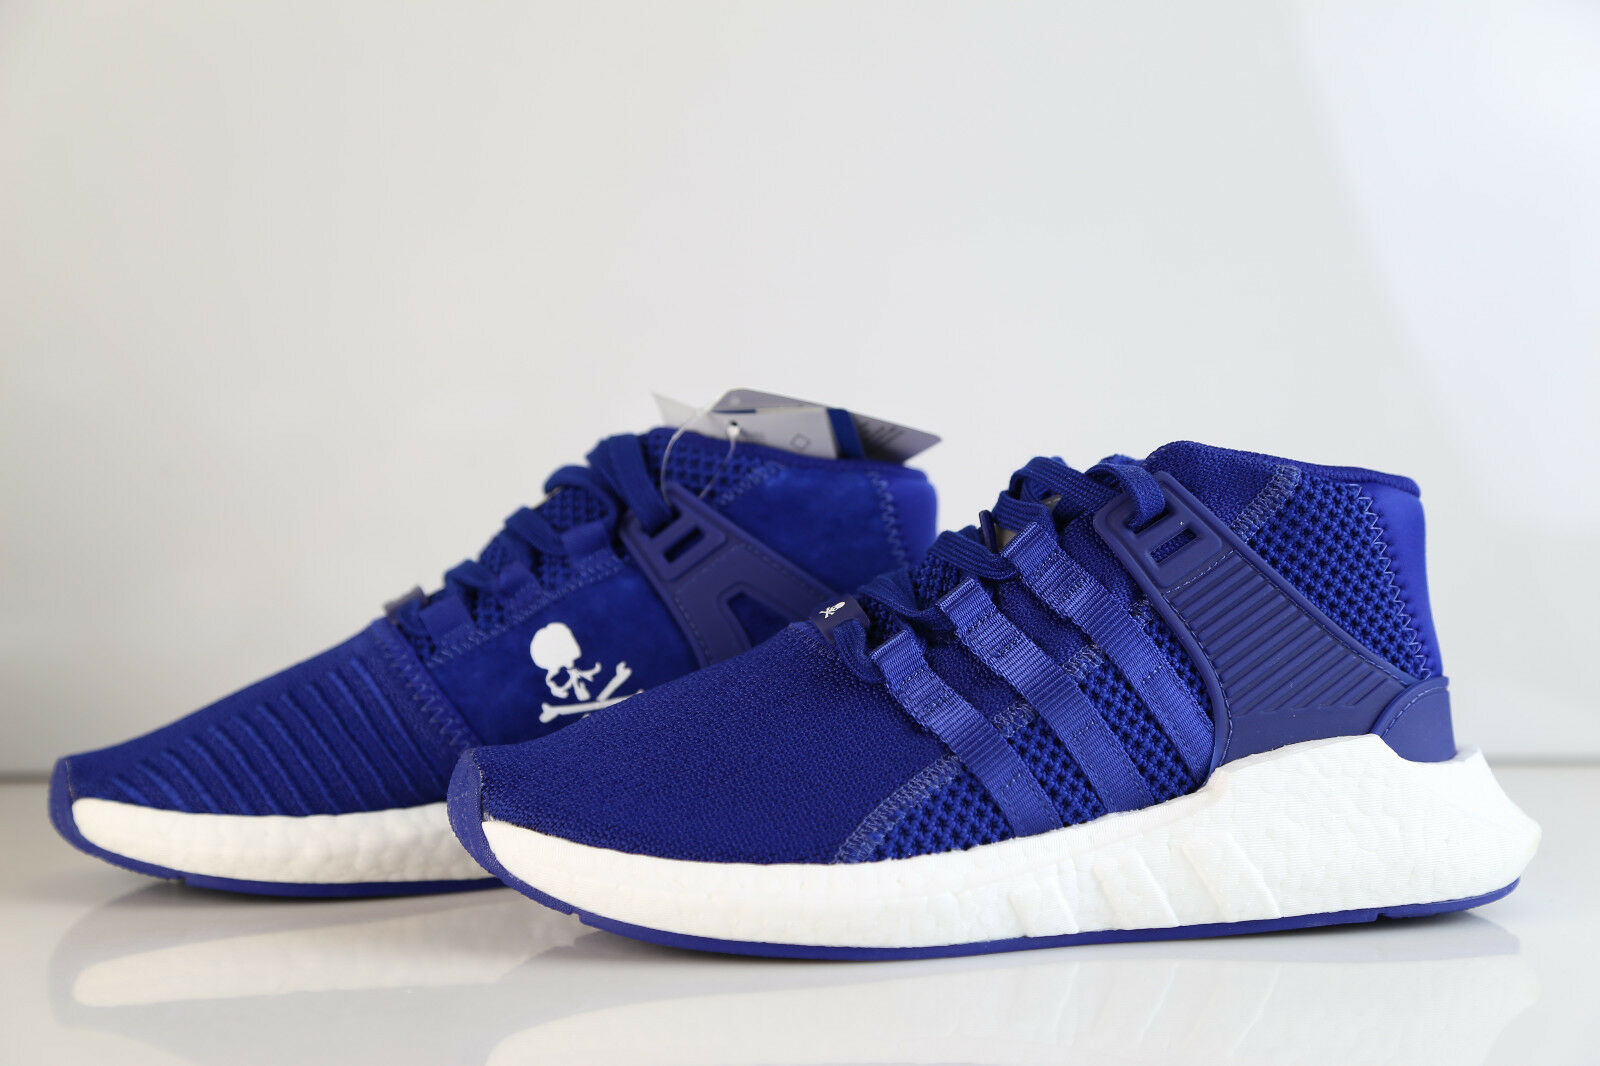 Adidas X MasterMind Japan EQT Support Mid MMW Mystery Ink Blue CQ1825 7-13 boost